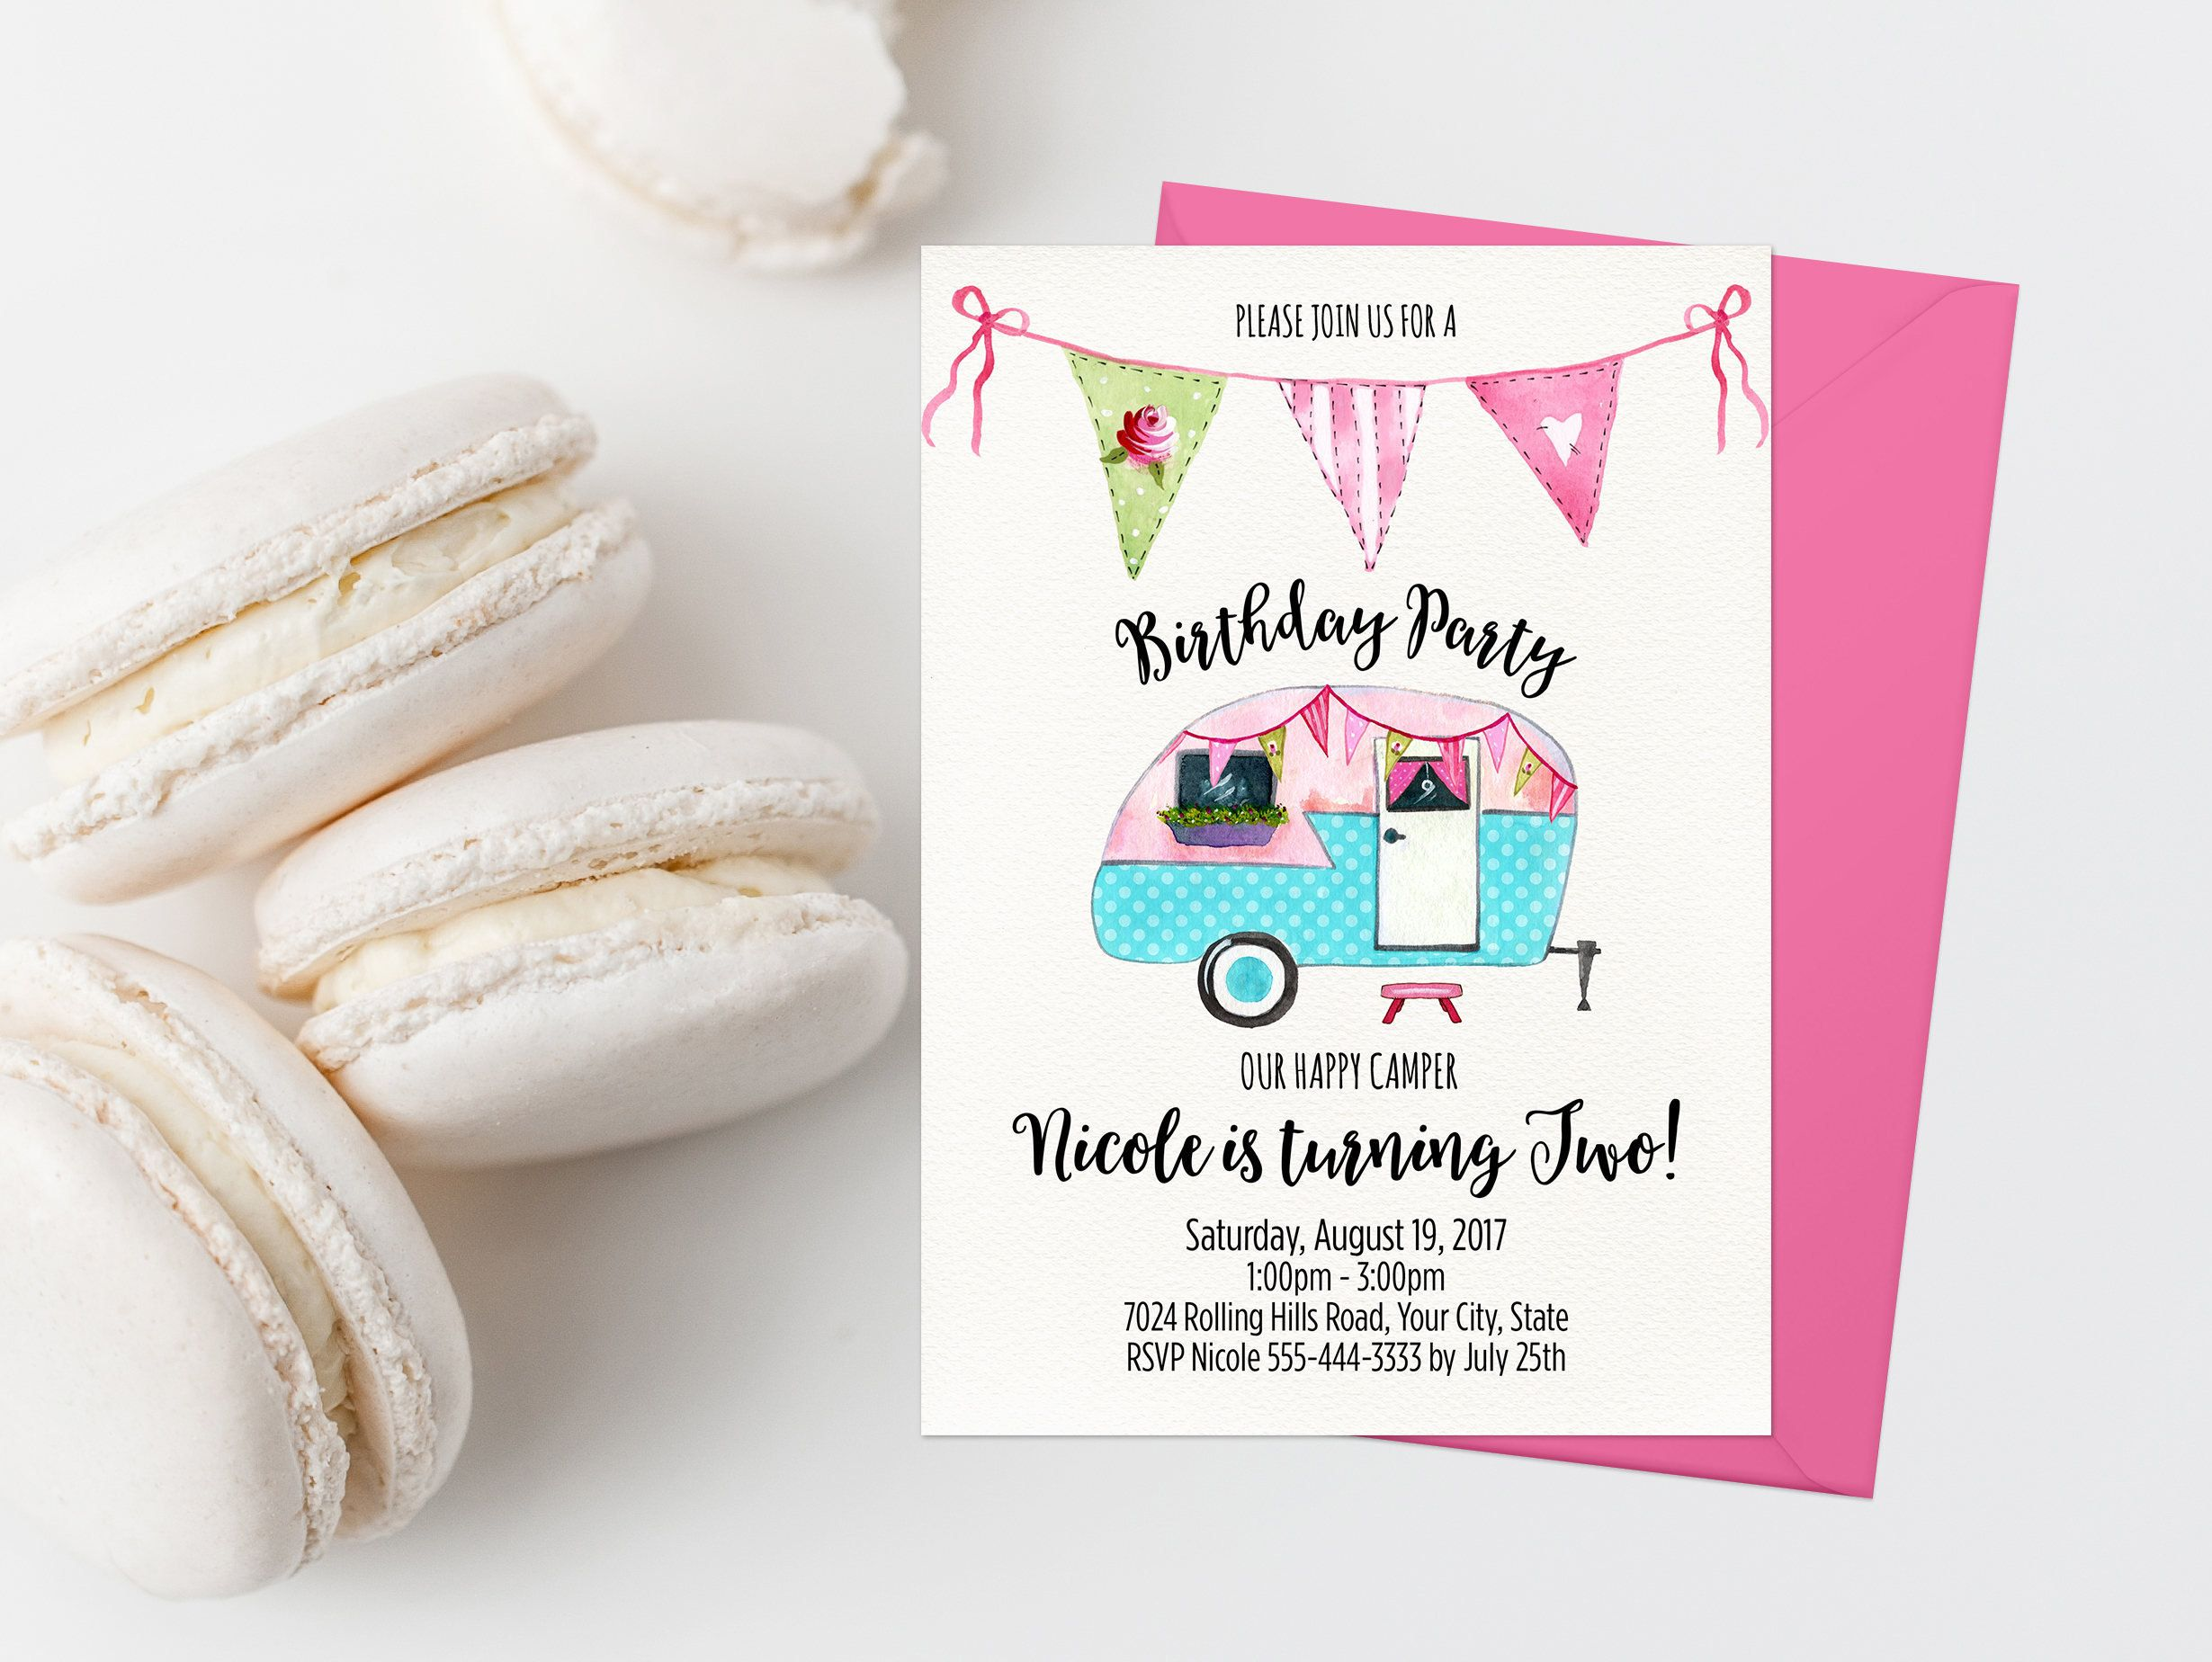 Happy Camper Birthday Party Invitation Personalized Number Is Turning One Two Girl Invites By